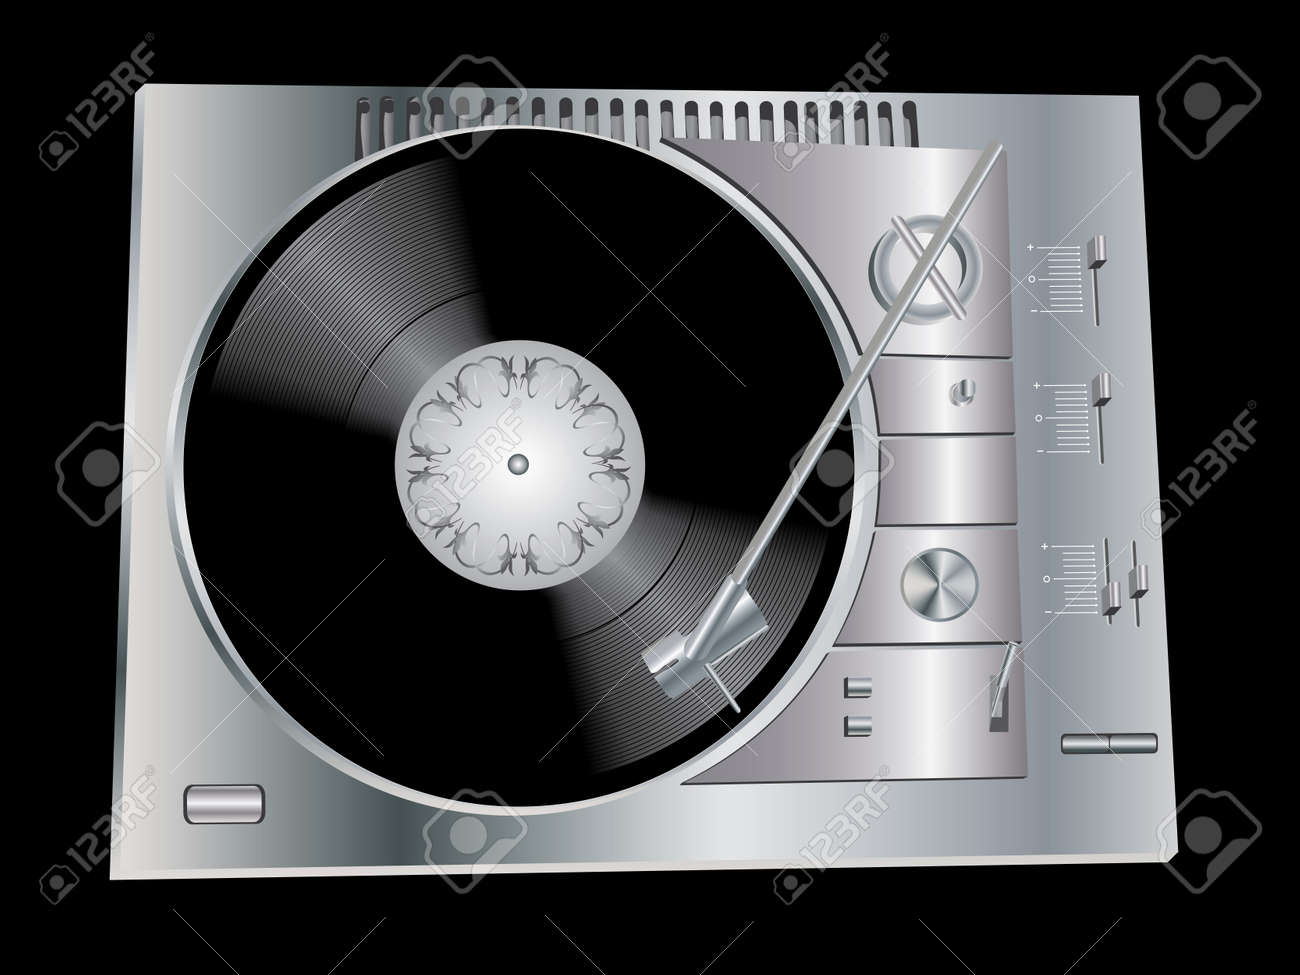 the image of a vinyl dj u0027s deck grey colour on black background